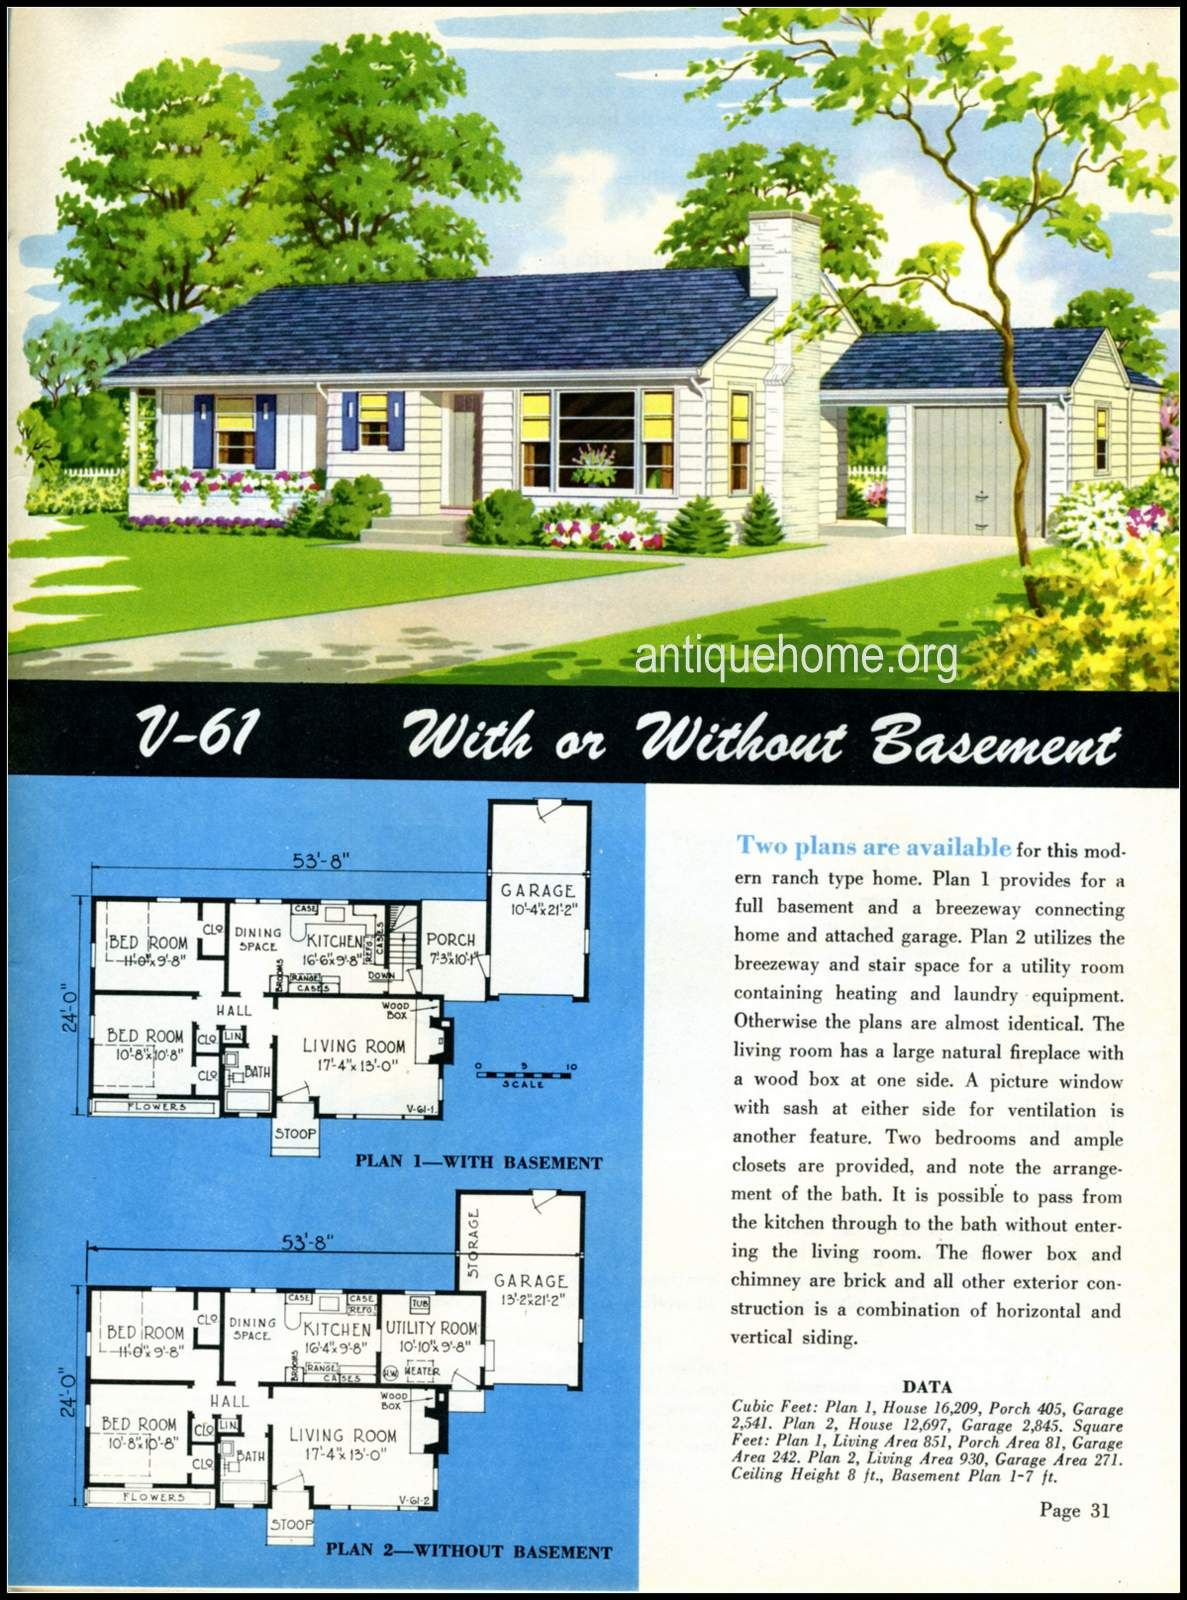 1949 Ranch Style Homes From National Plan Service And Antiquehome Org House Styles House Plans With Pictures House Plans